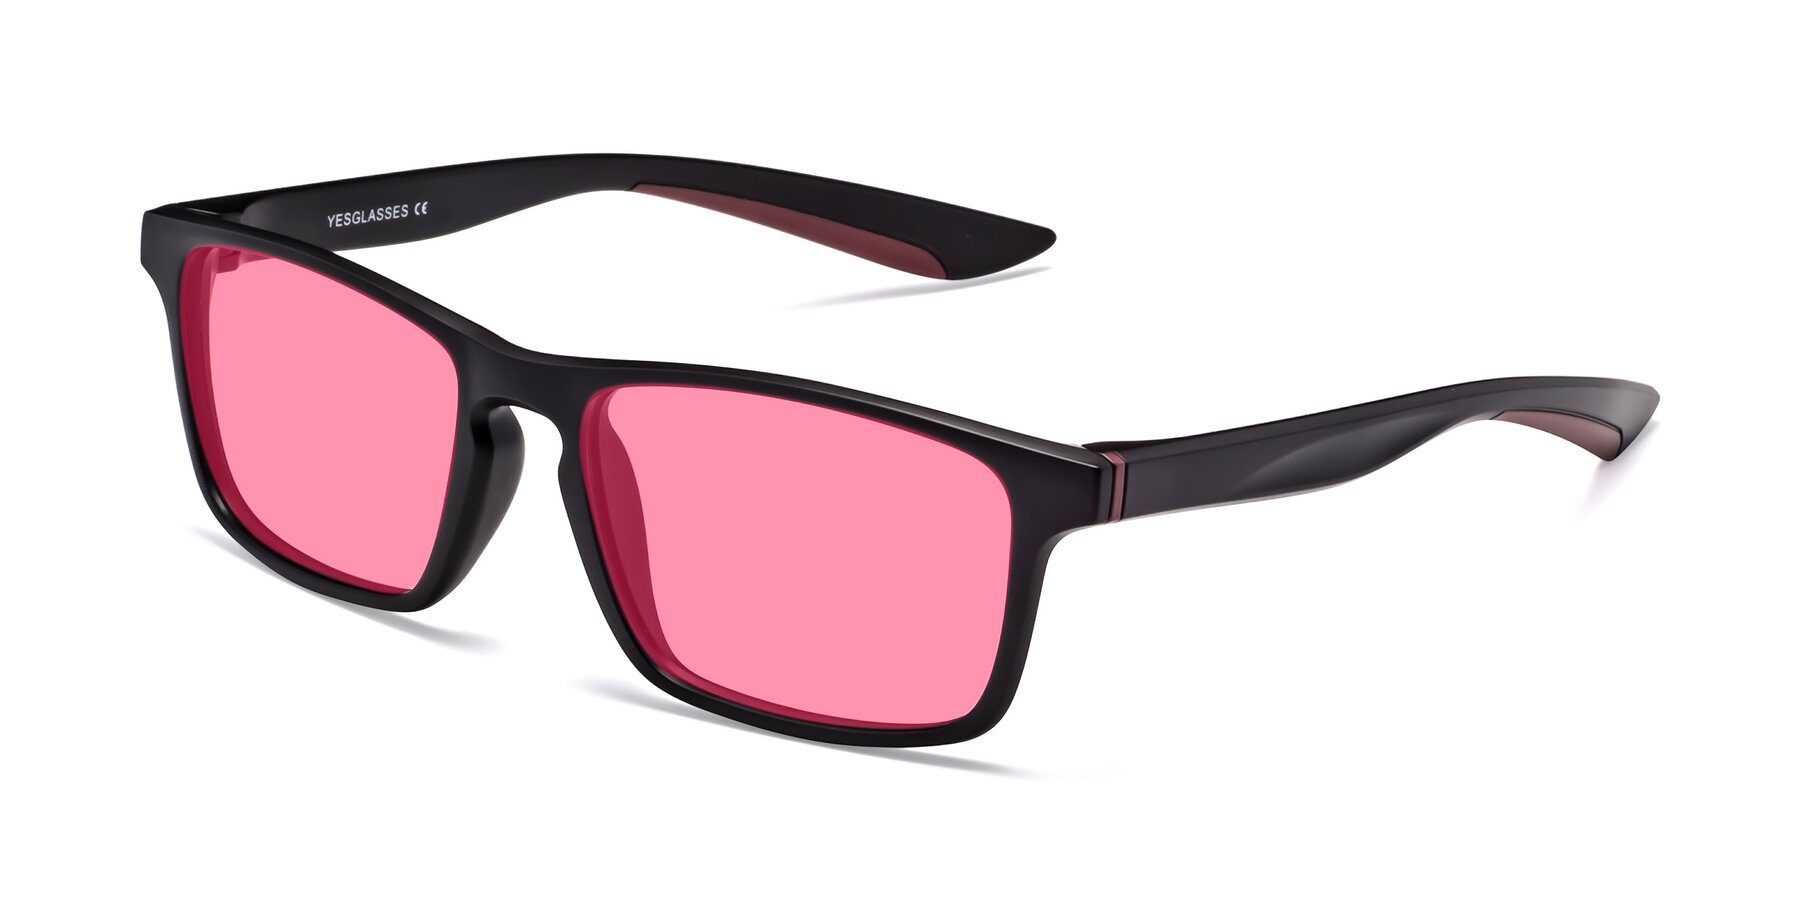 Angle of Passion in Matte Black-Wine with Pink Tinted Lenses